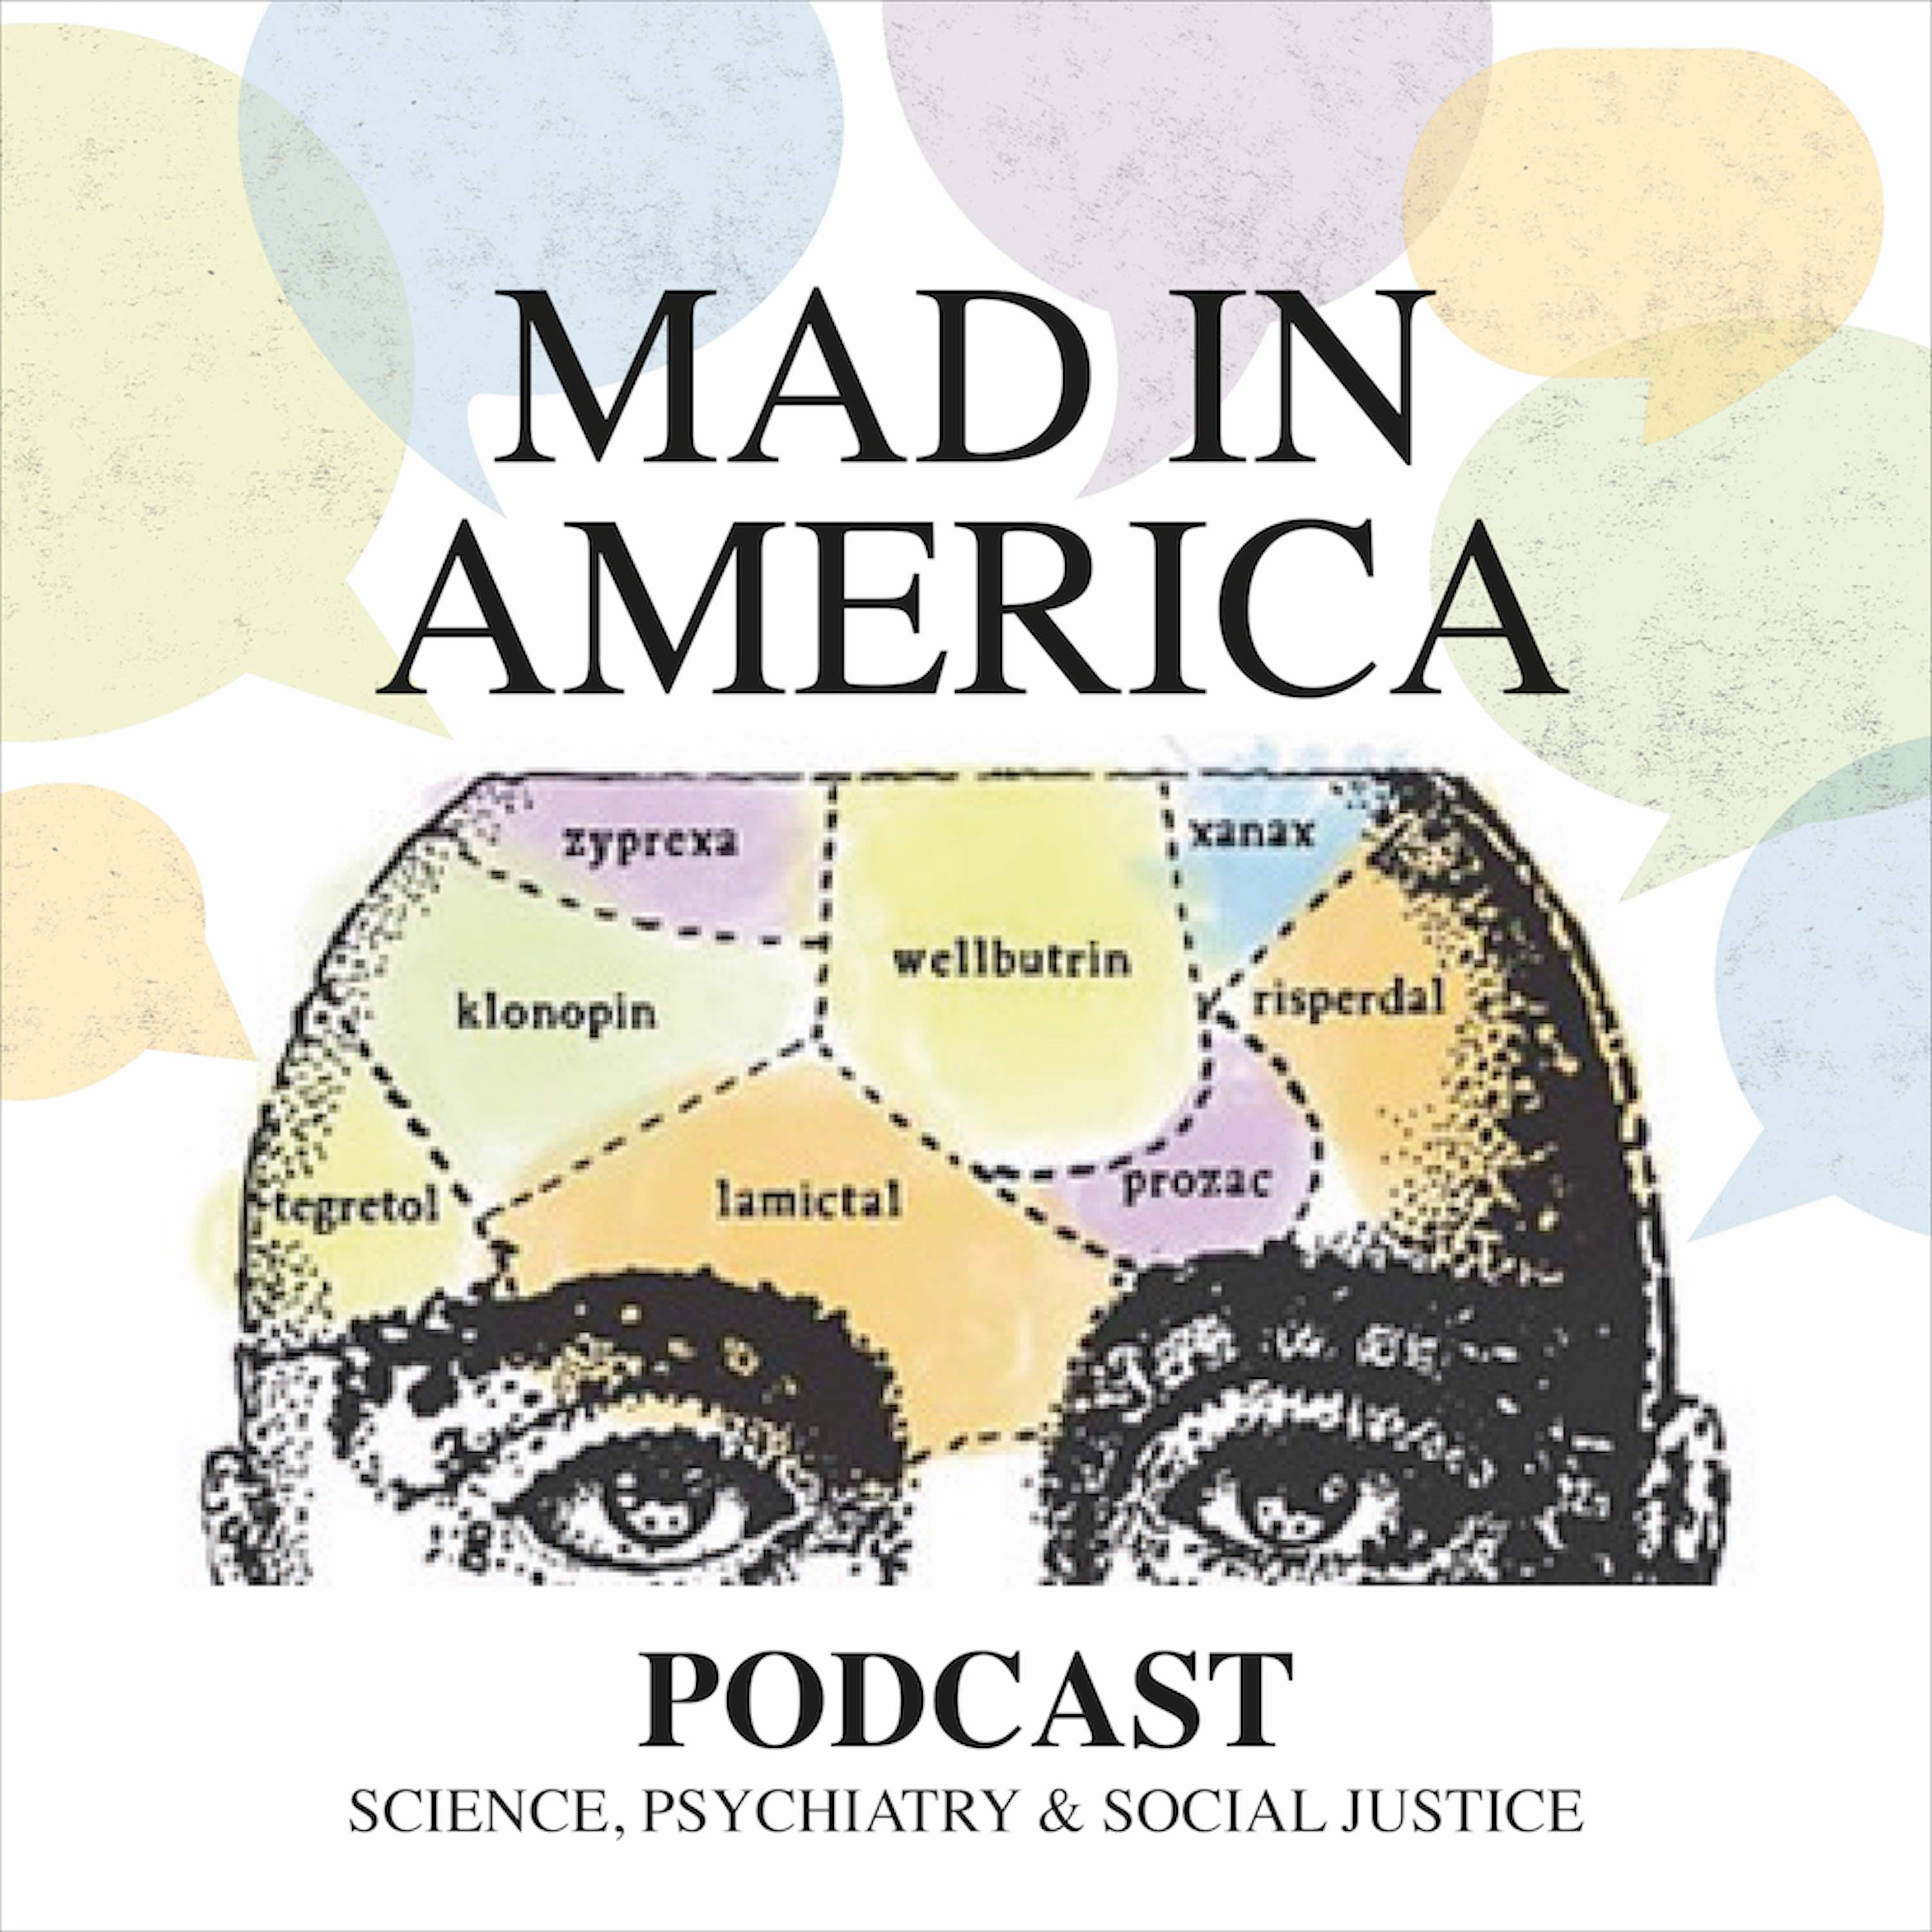 Mad in America: Rethinking Mental Health - John Read - What the Science and Evidence Tell Us About Electroshock (ECT)